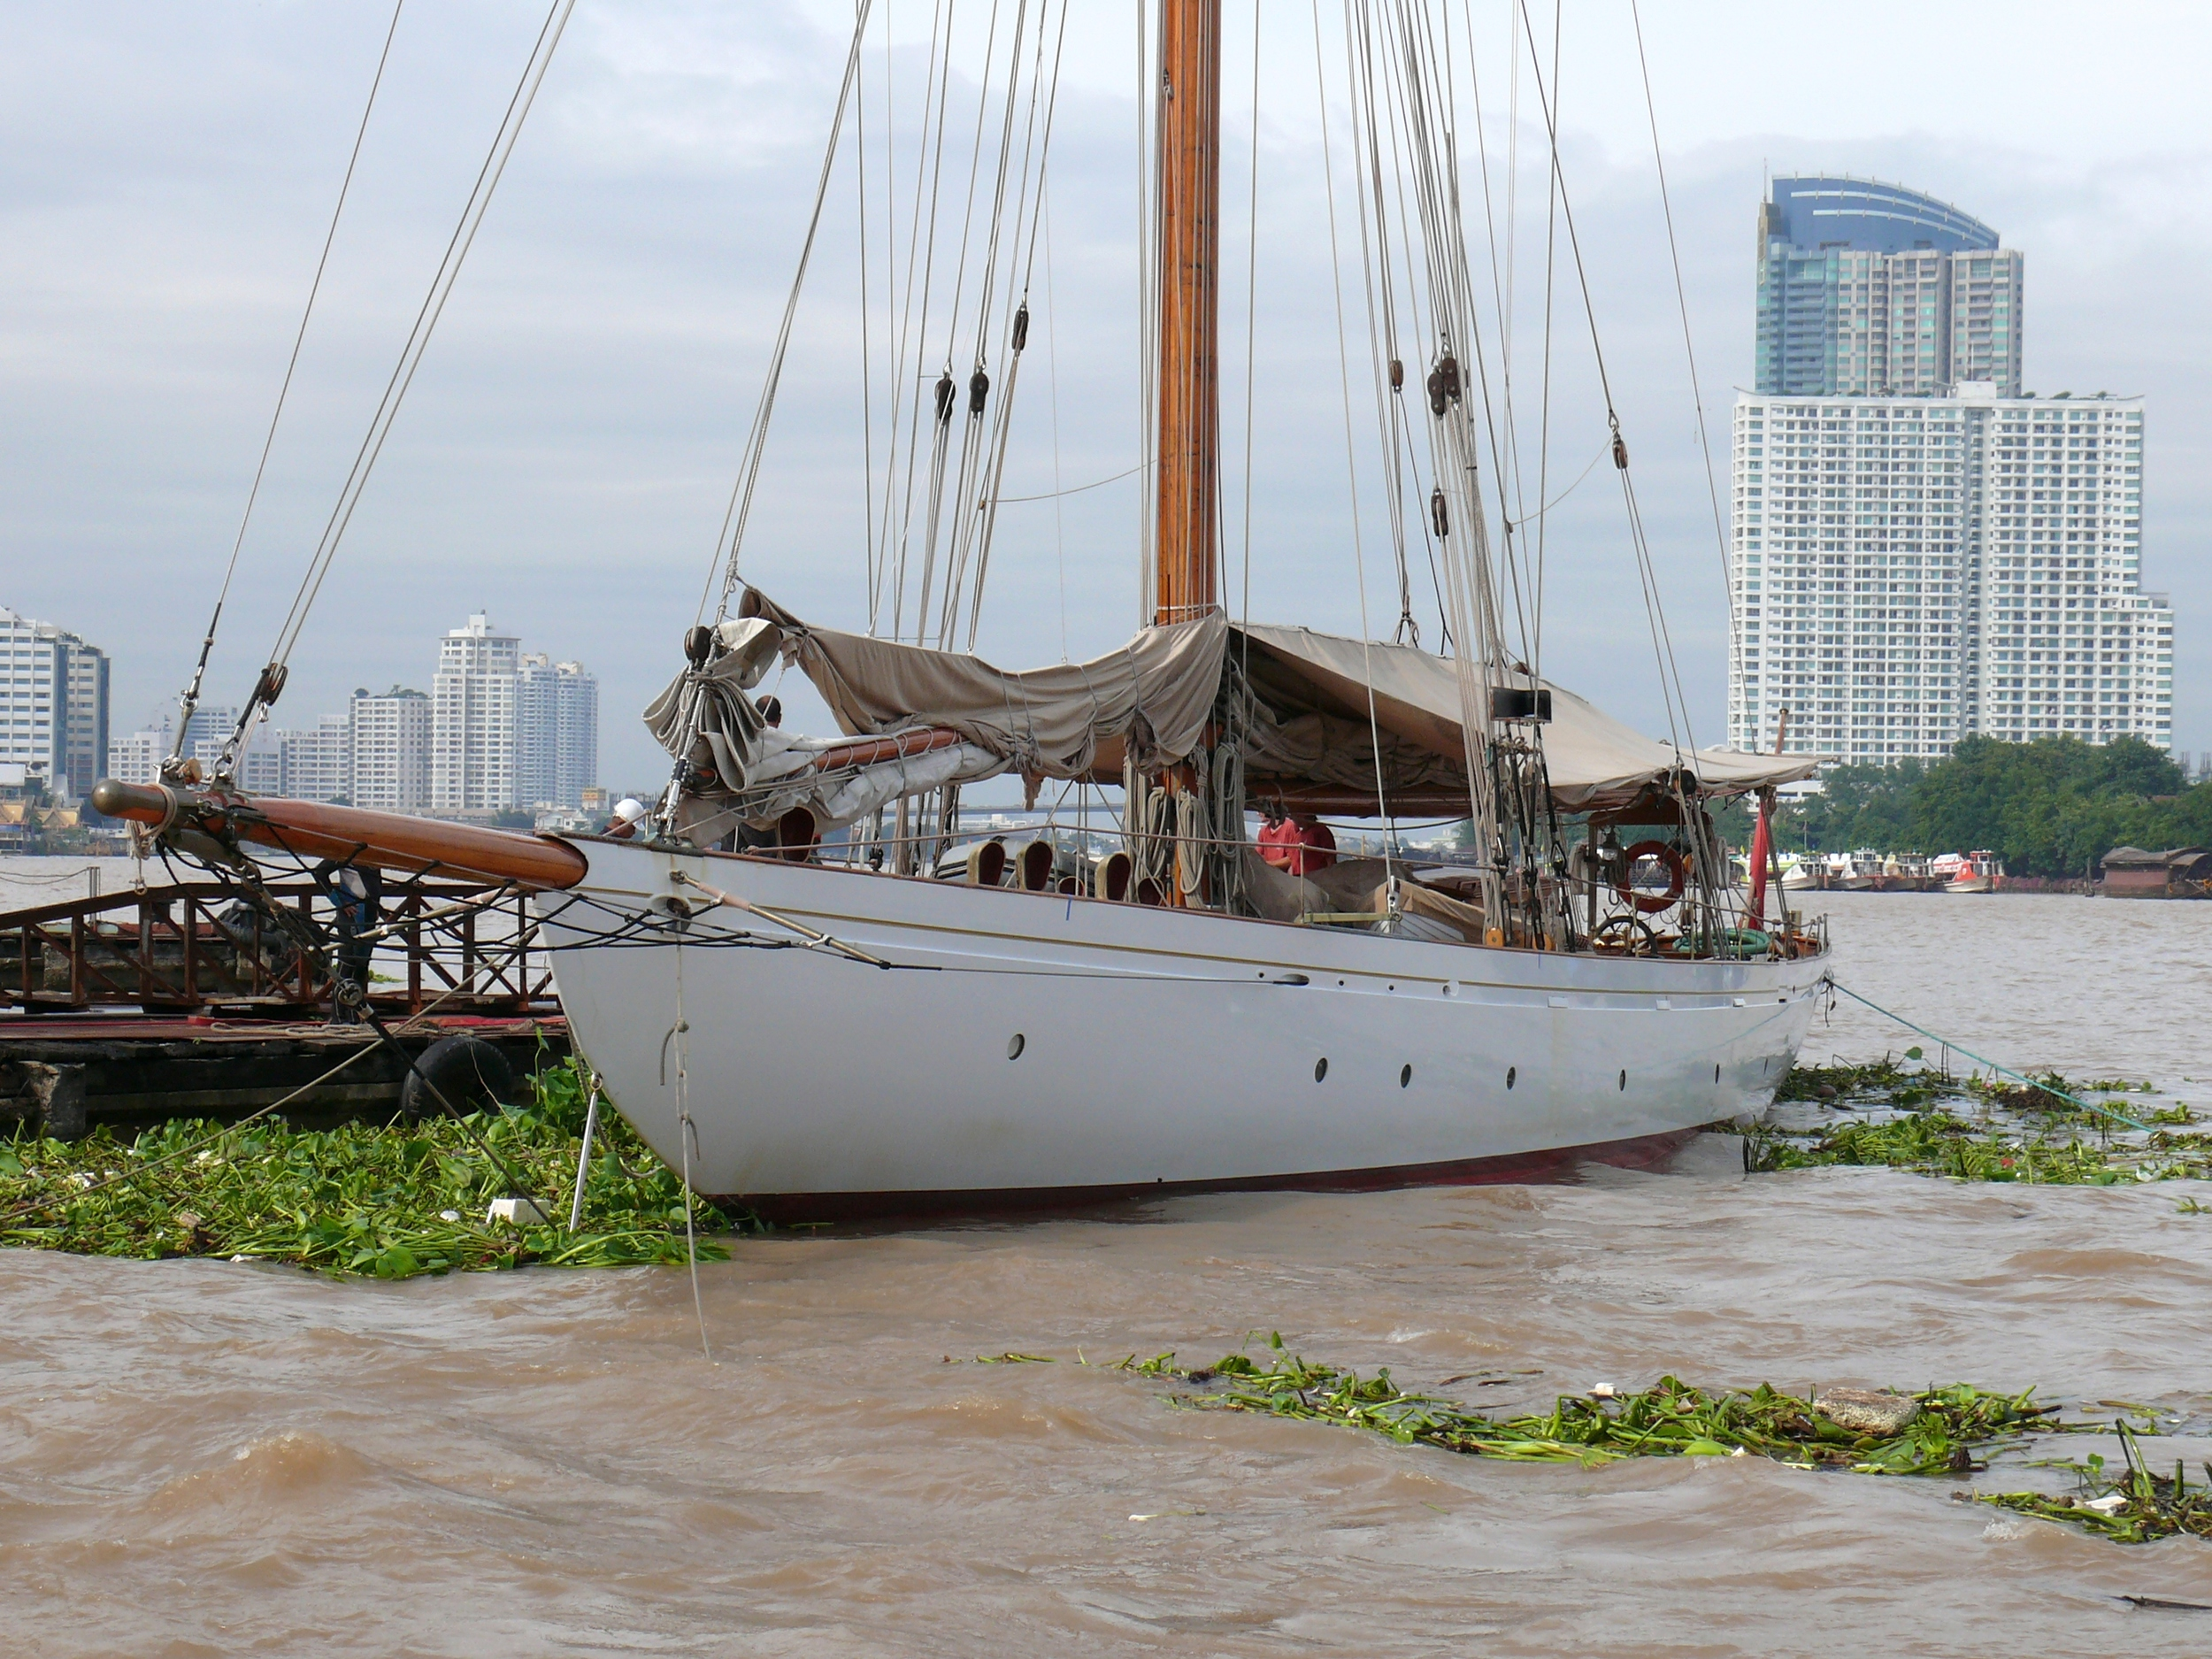 112'MERRY MAID' - BANGKOK DOCK 2012